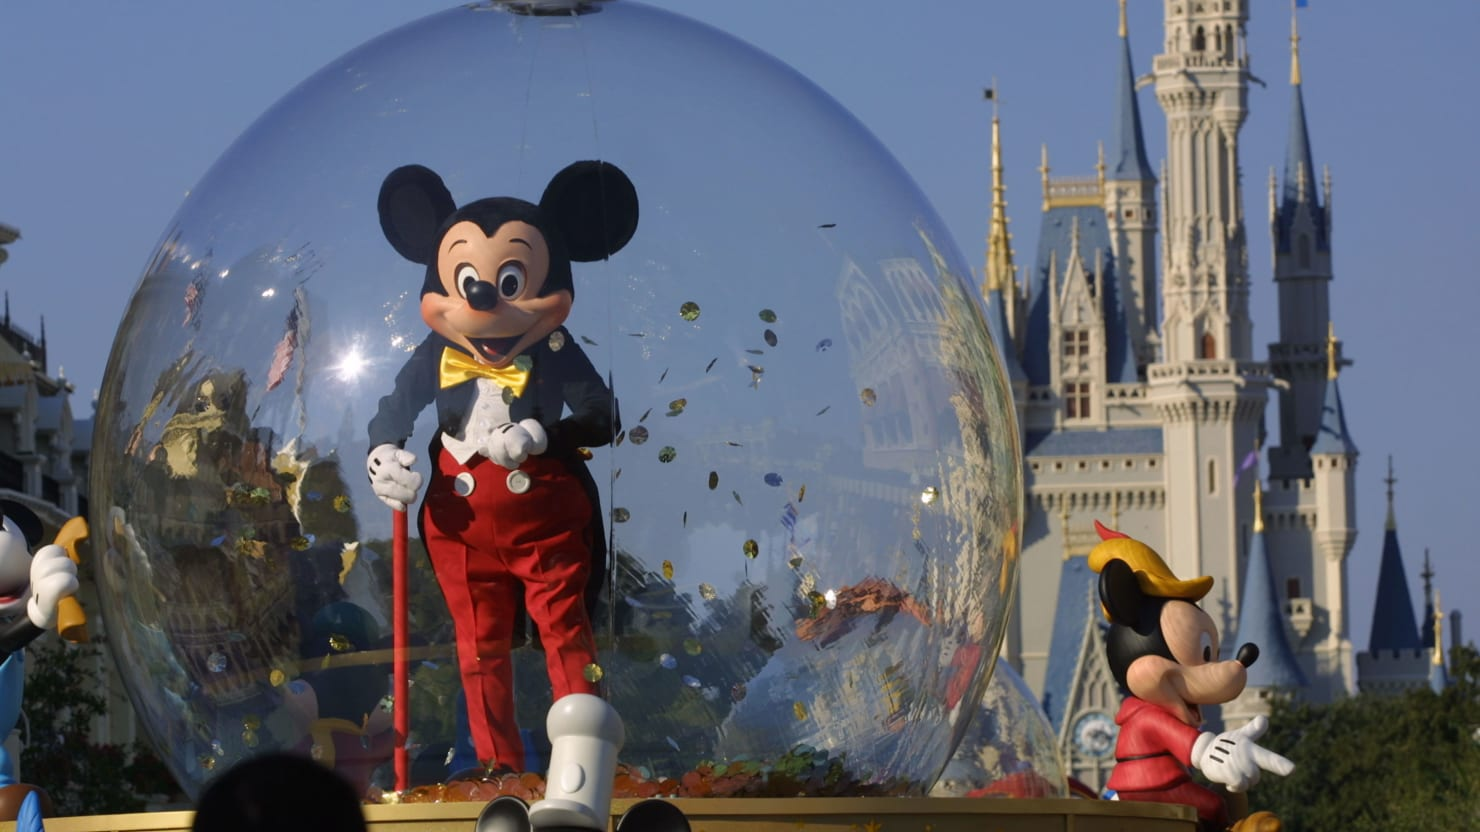 Orlando Man Threatens to Kill Disney World Employee Over Mask Rule